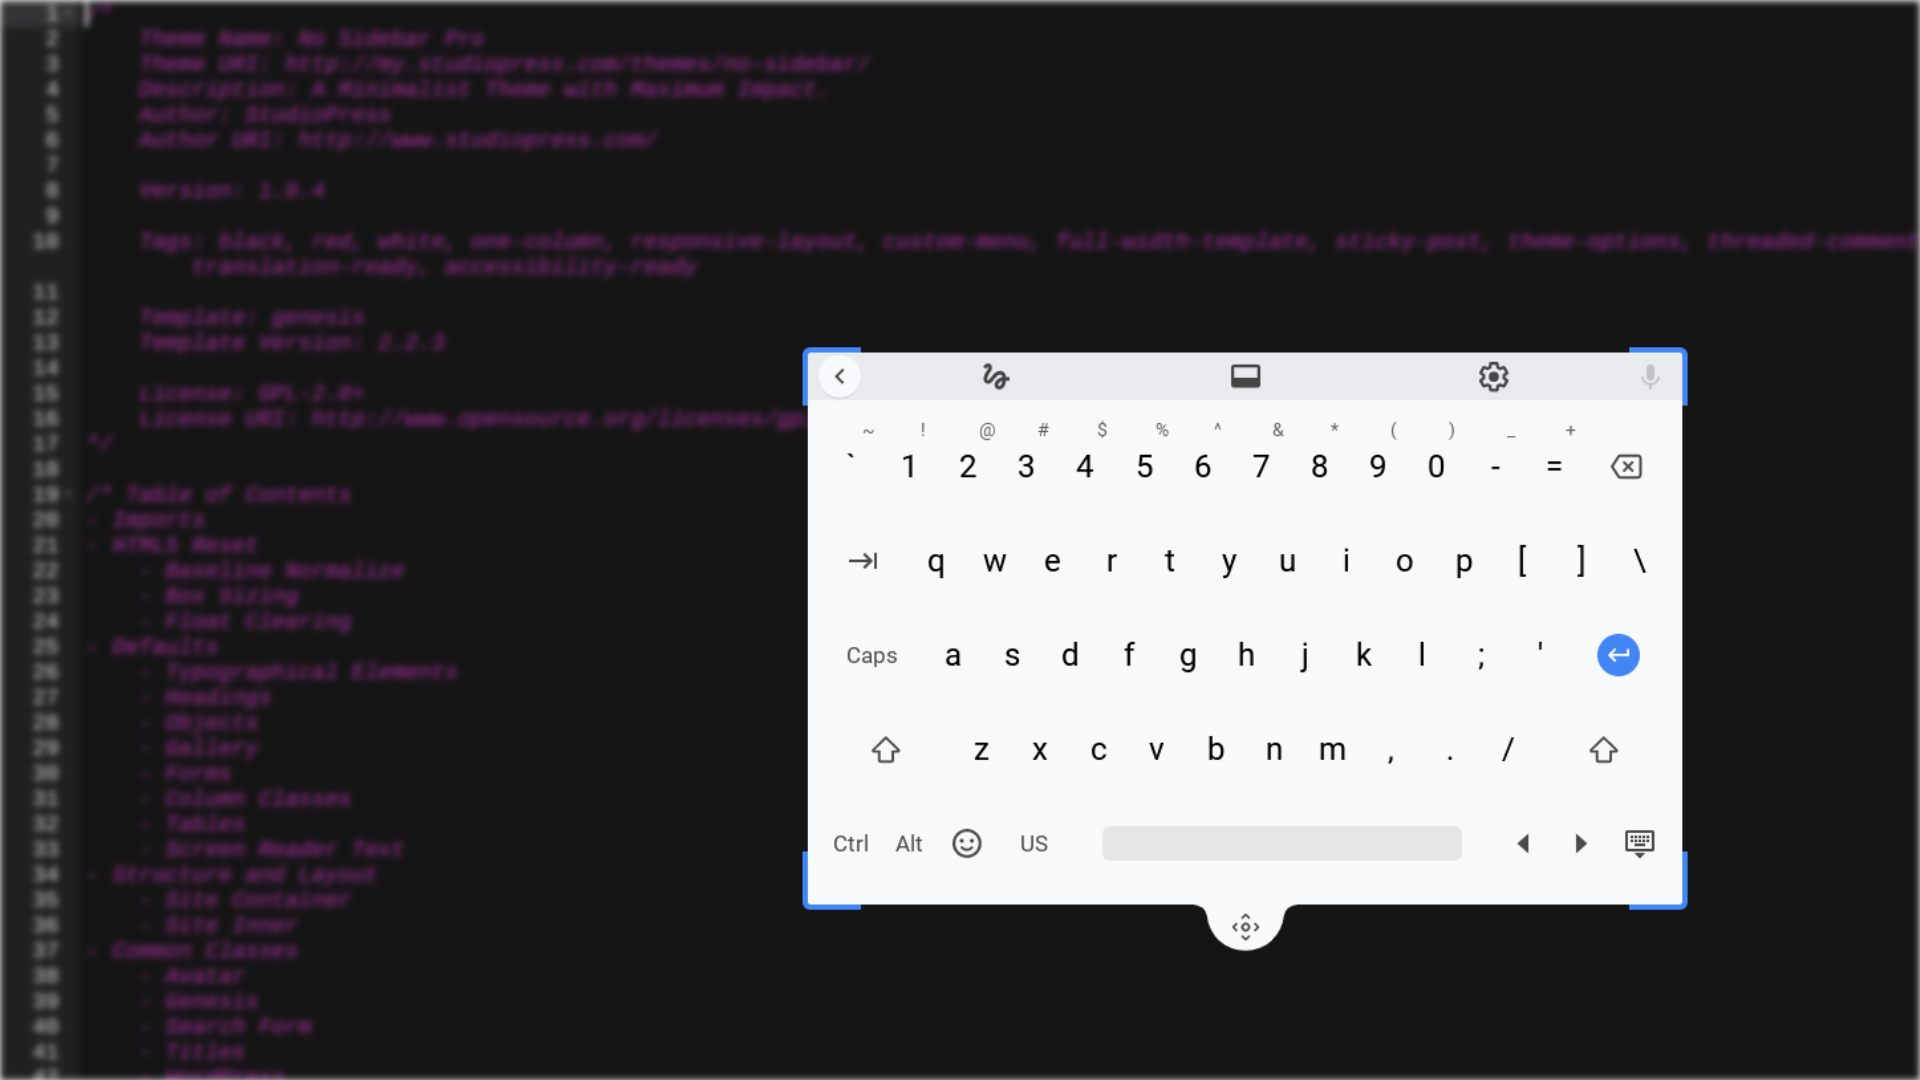 Chrome OS floating virtual keyboard will soon be resizable